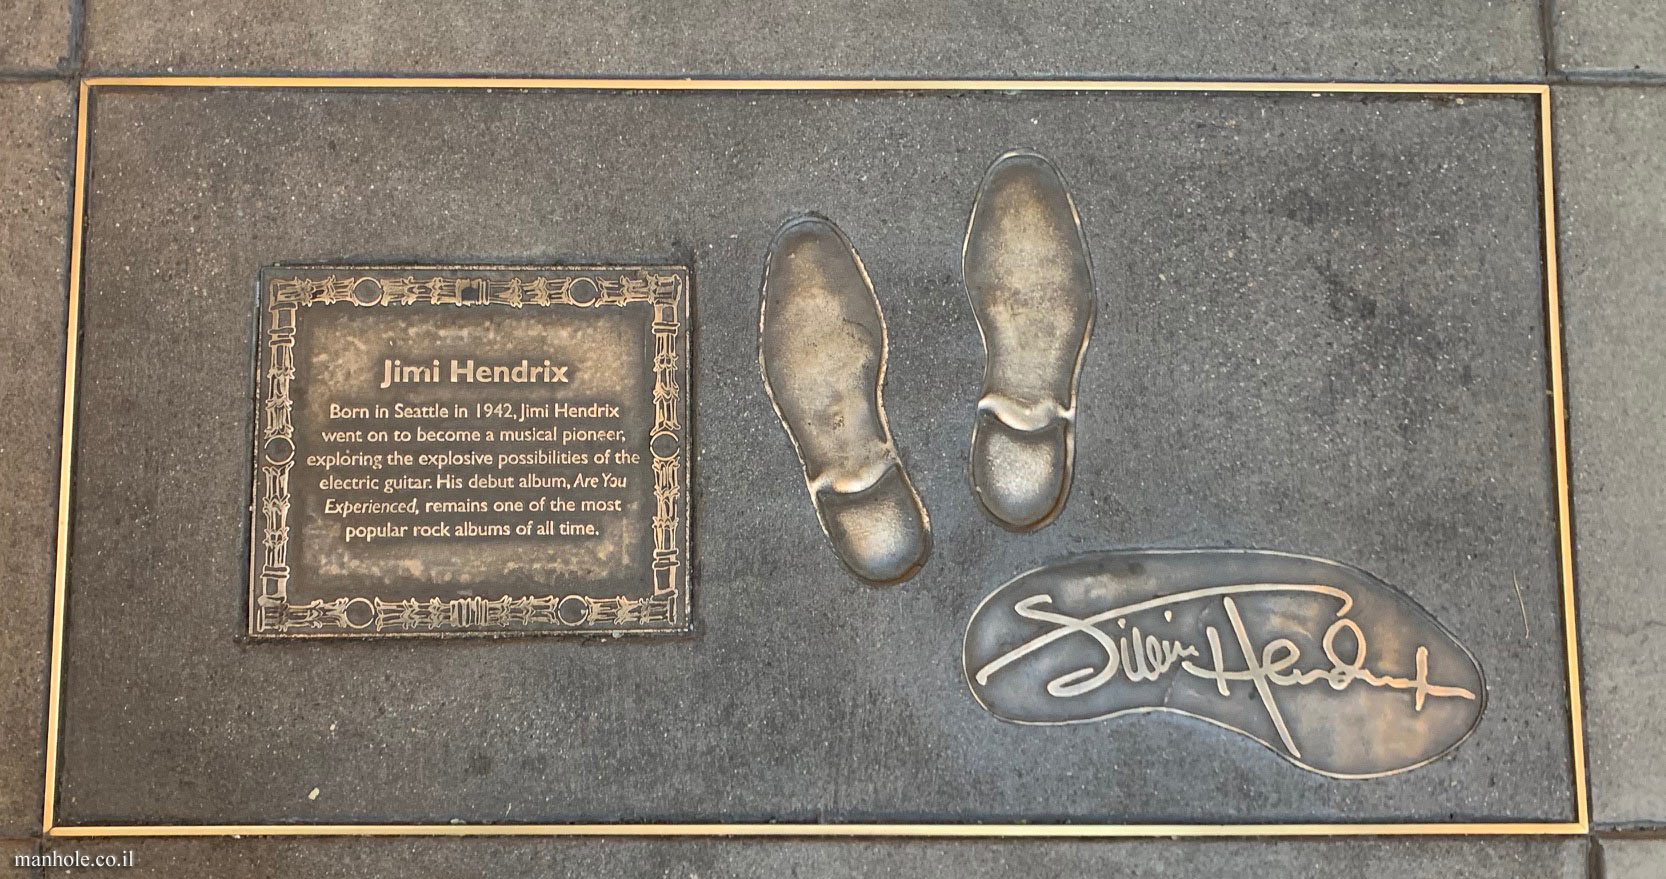 Seattle Walk of Fame - Jimmy Hendrix